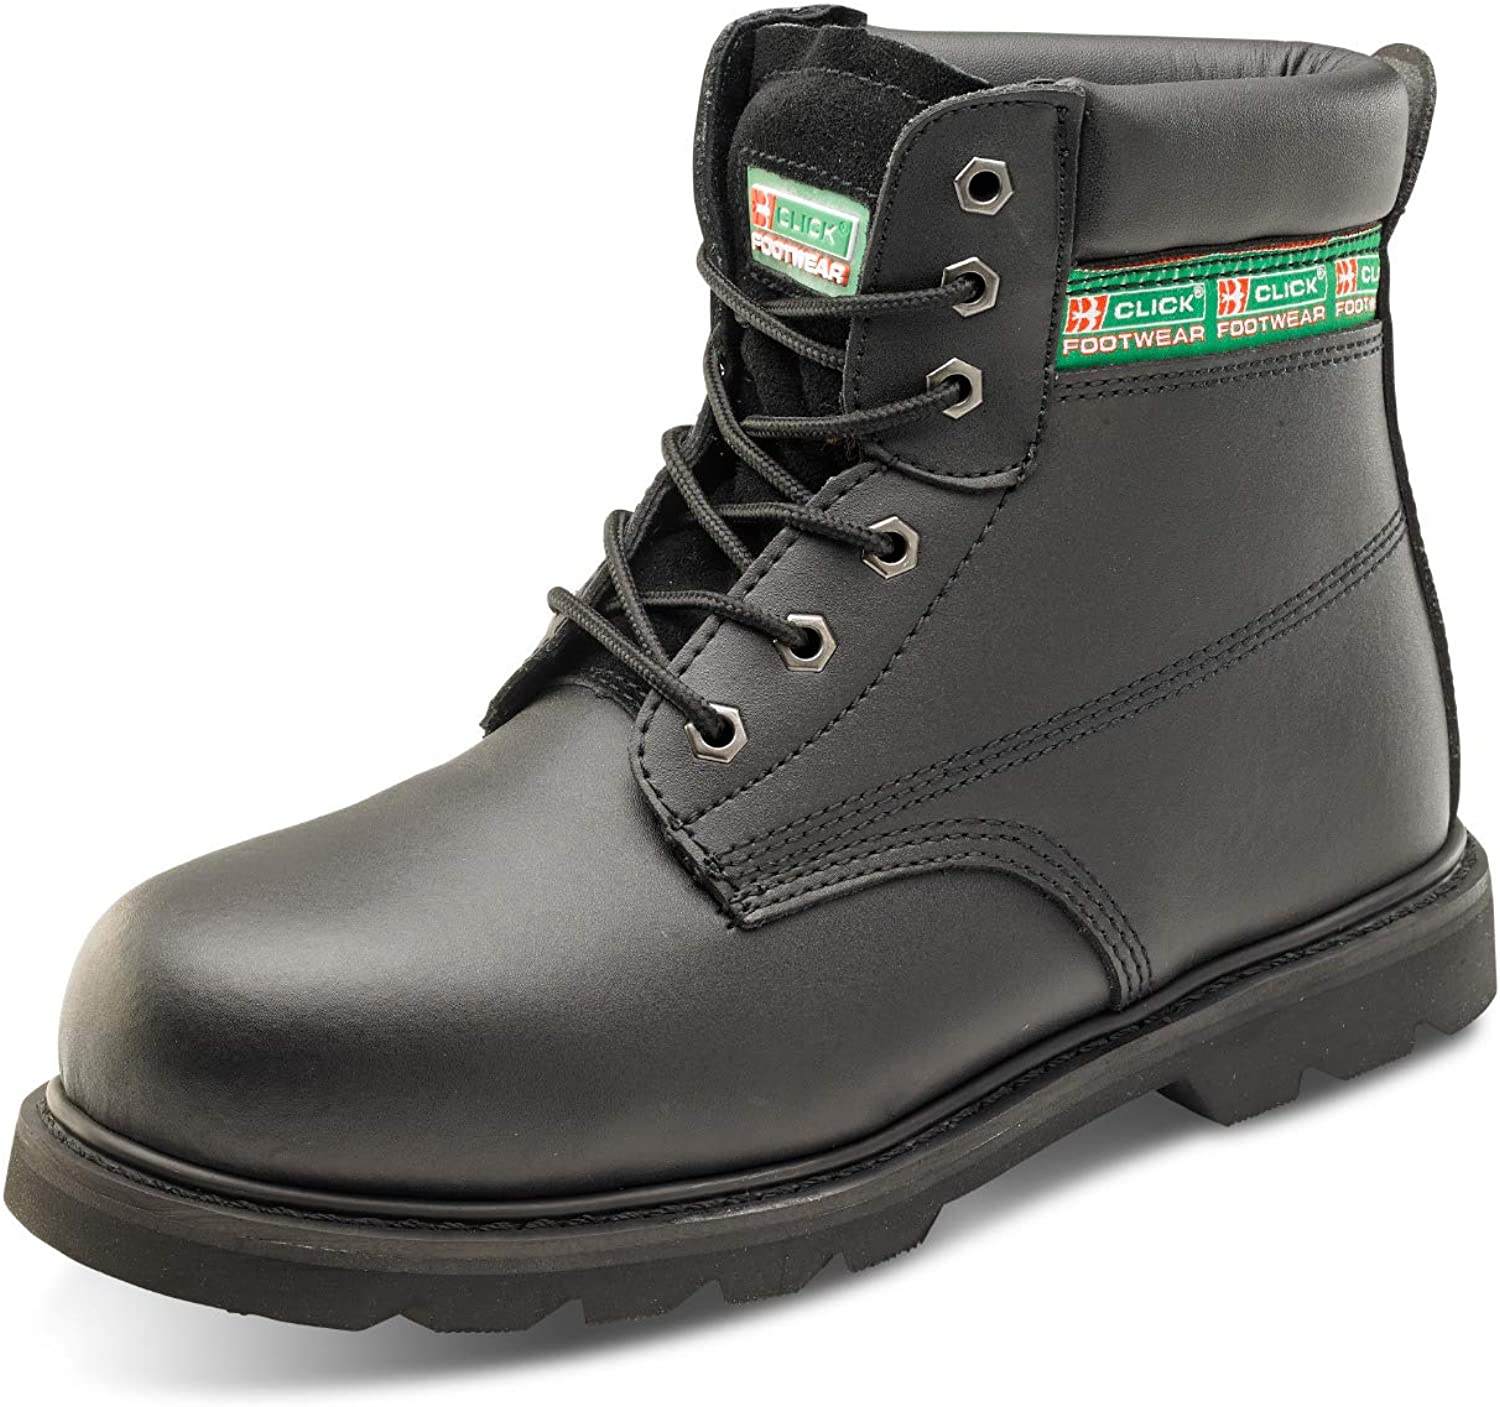 PDL Safety Footwear WELT Black Boot shoes Sizes 6-12 HGGWBMSBLBS